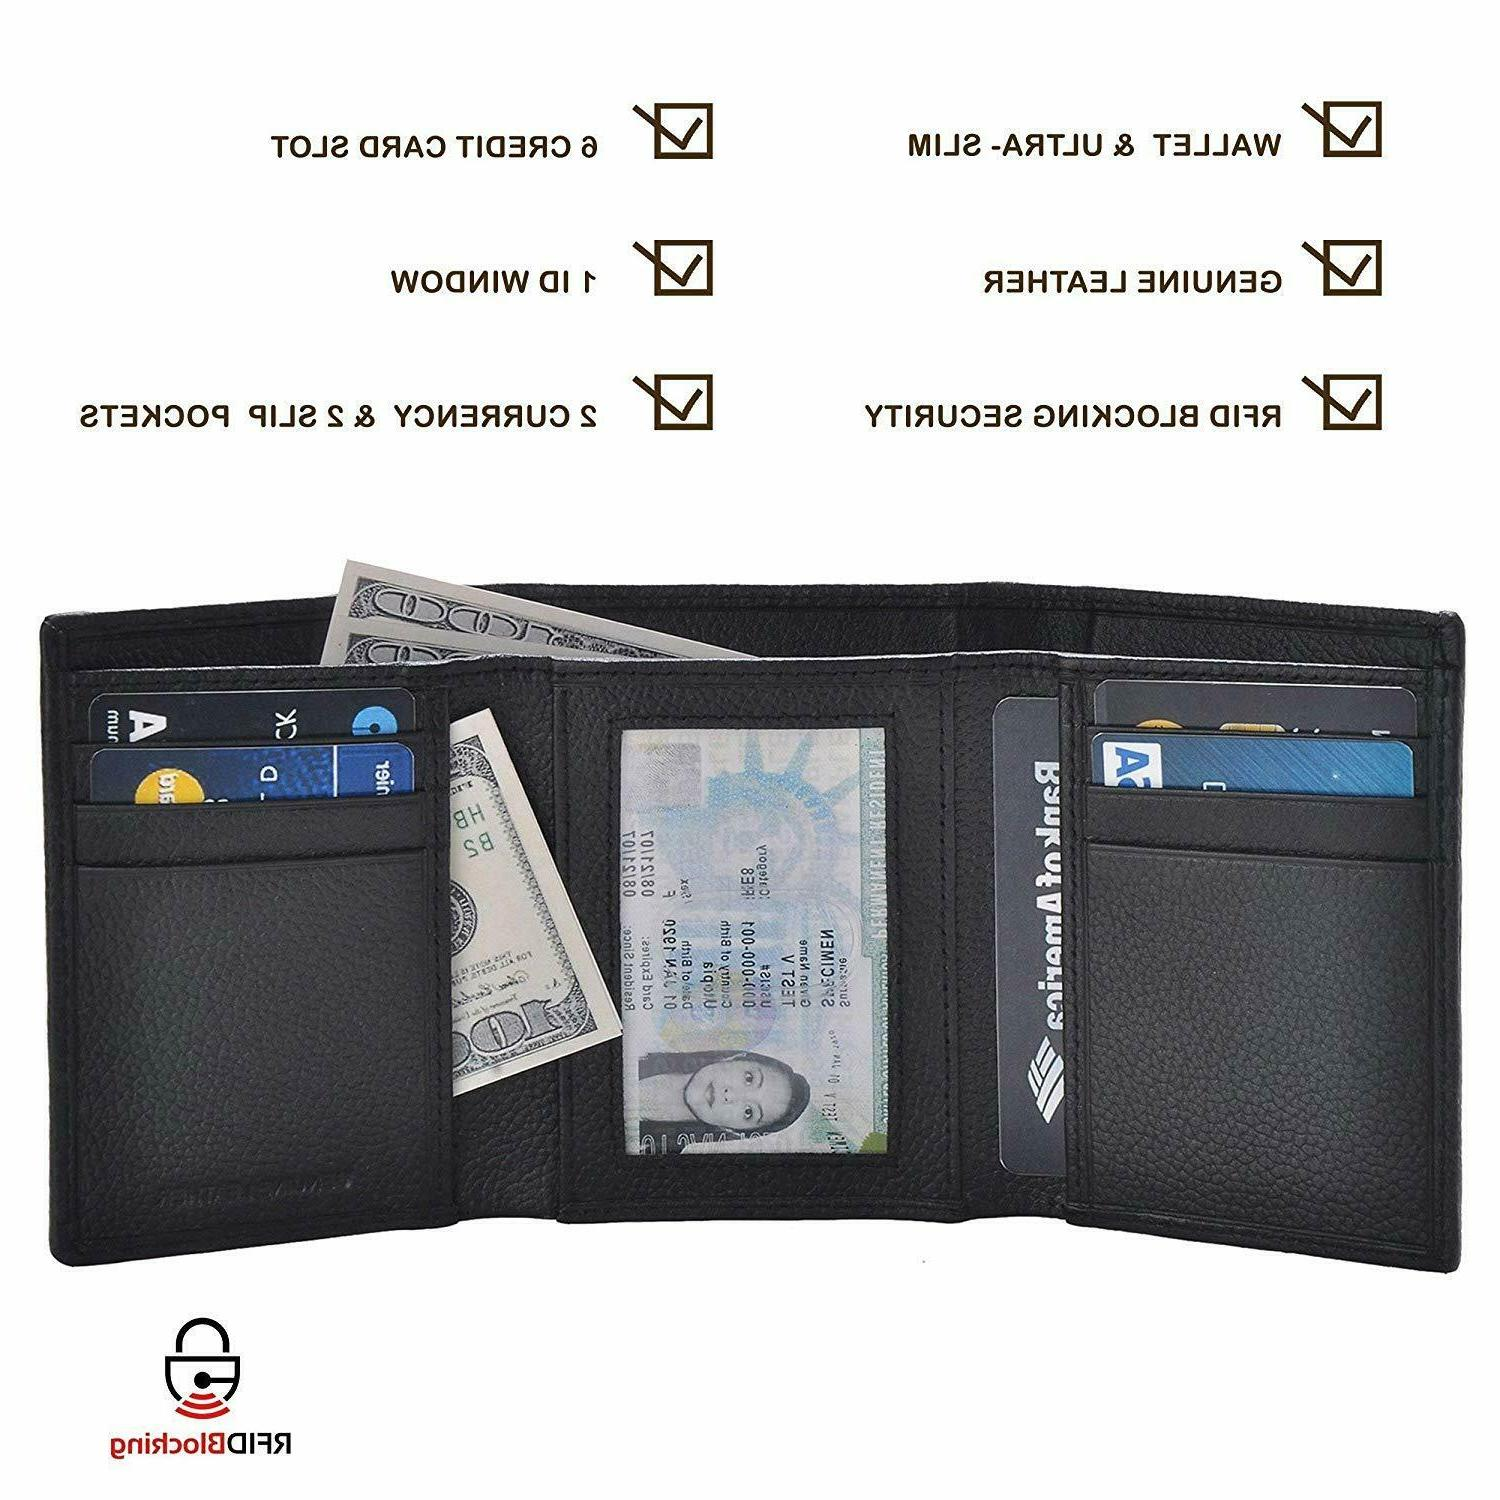 Leather wallets men with rfid blocking wallet,3.5x4.4x0.75